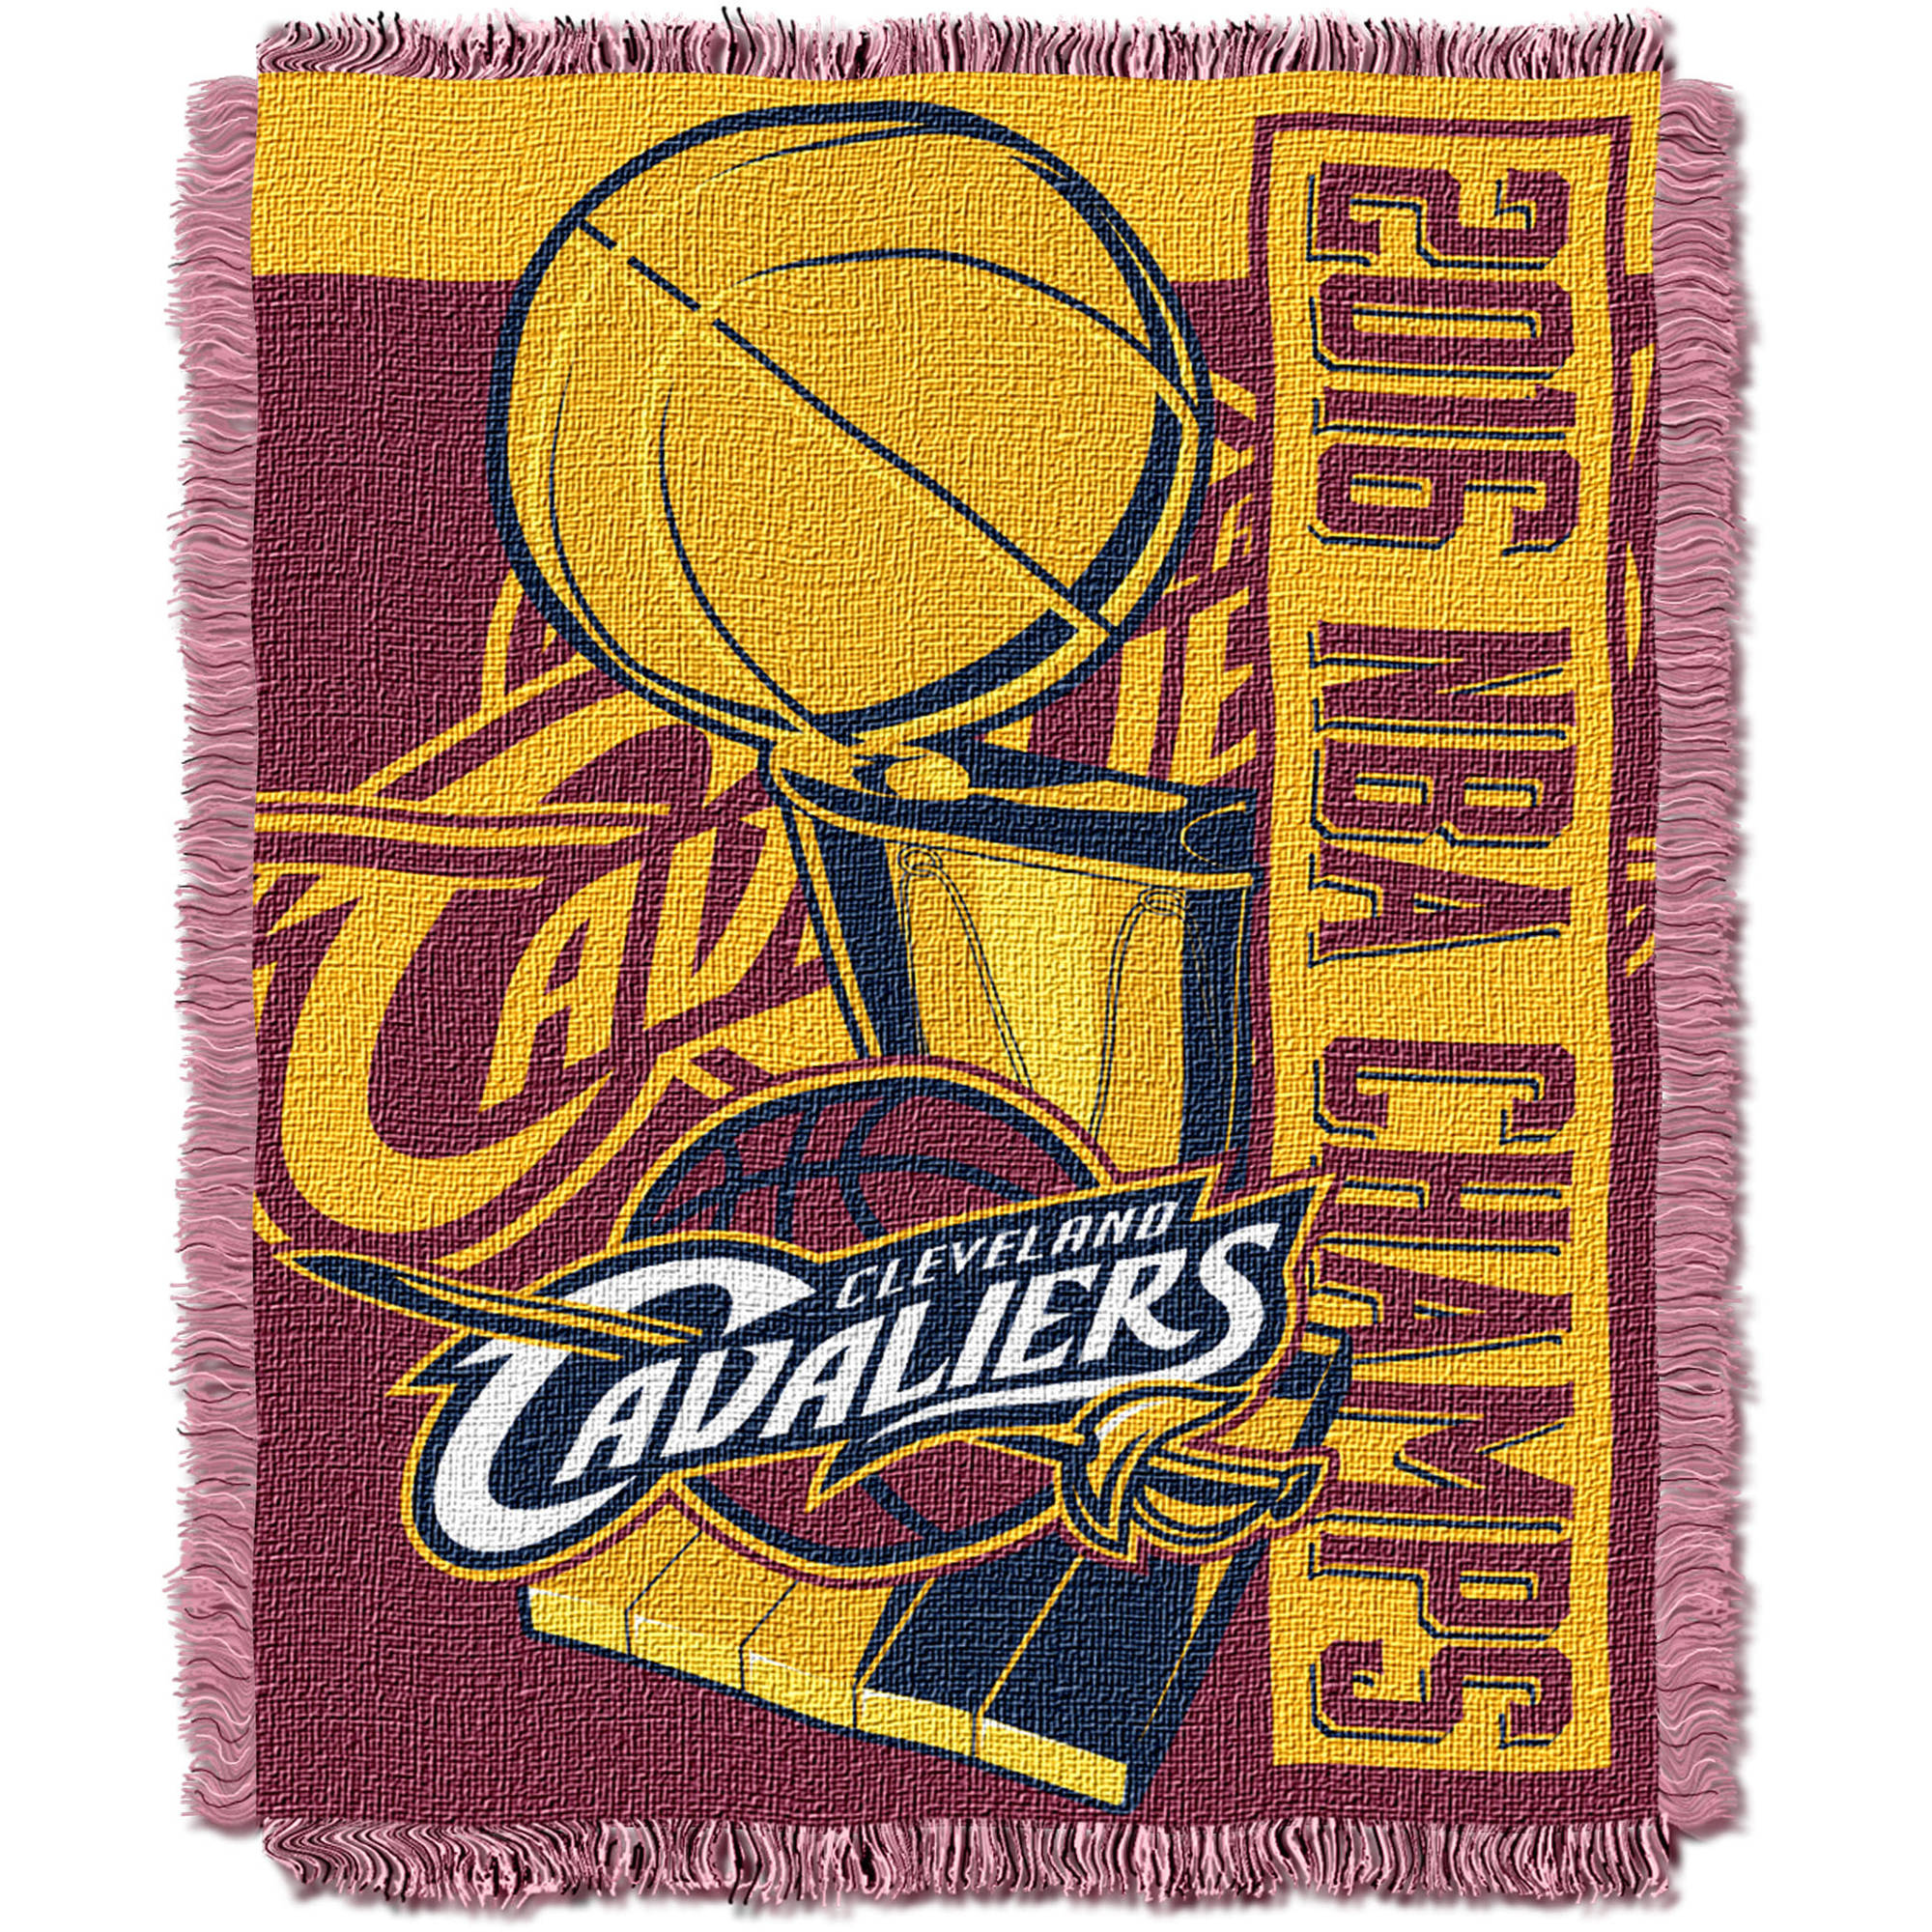 "NBA Cleveland Cavaliers 2016 NBA Champs 46"" x 60"" Jacquard Throw"